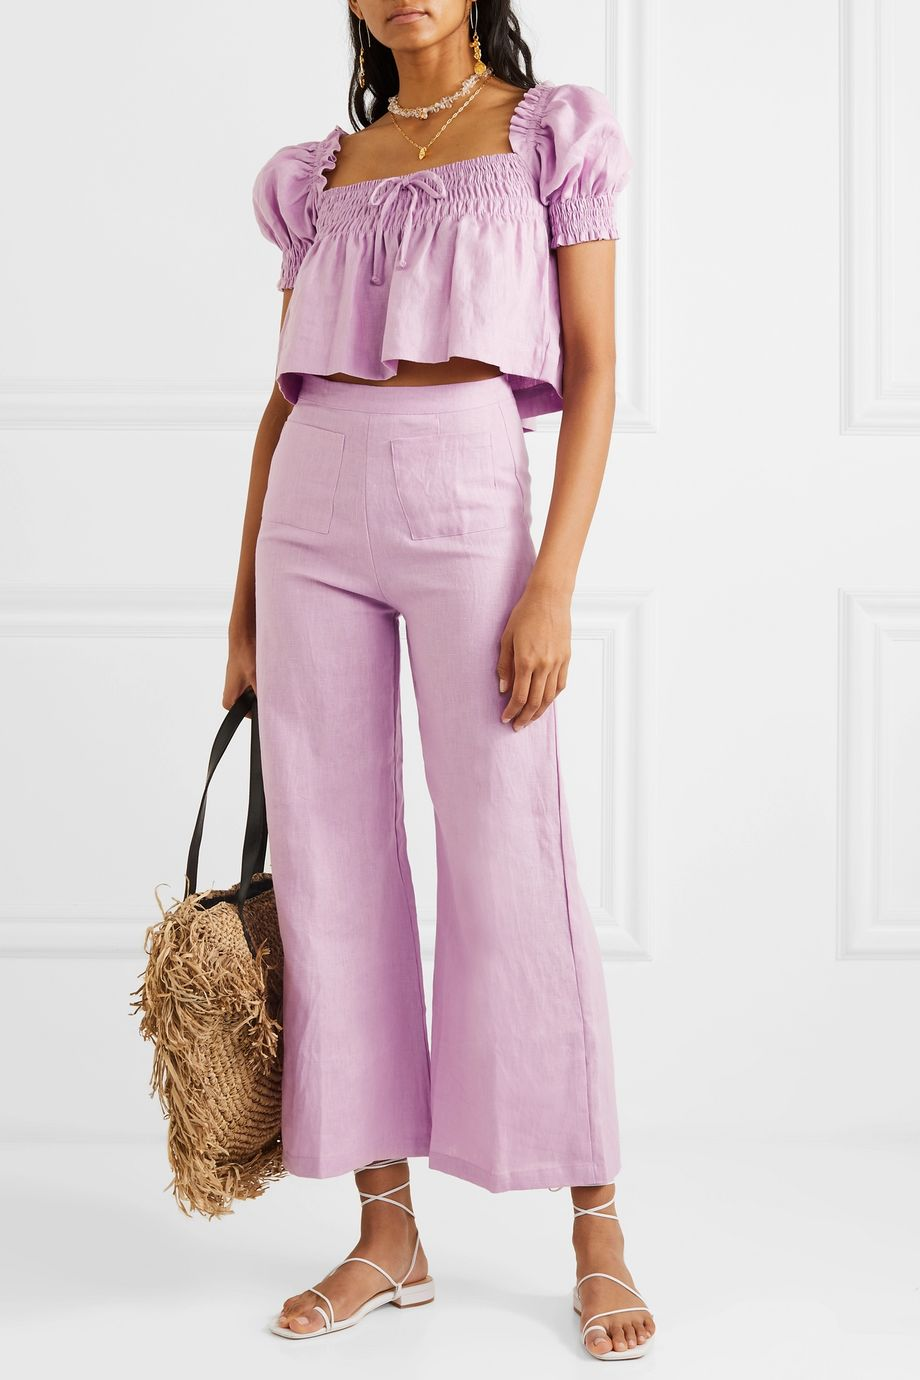 Faithfull The Brand Lilla cropped shirred linen top